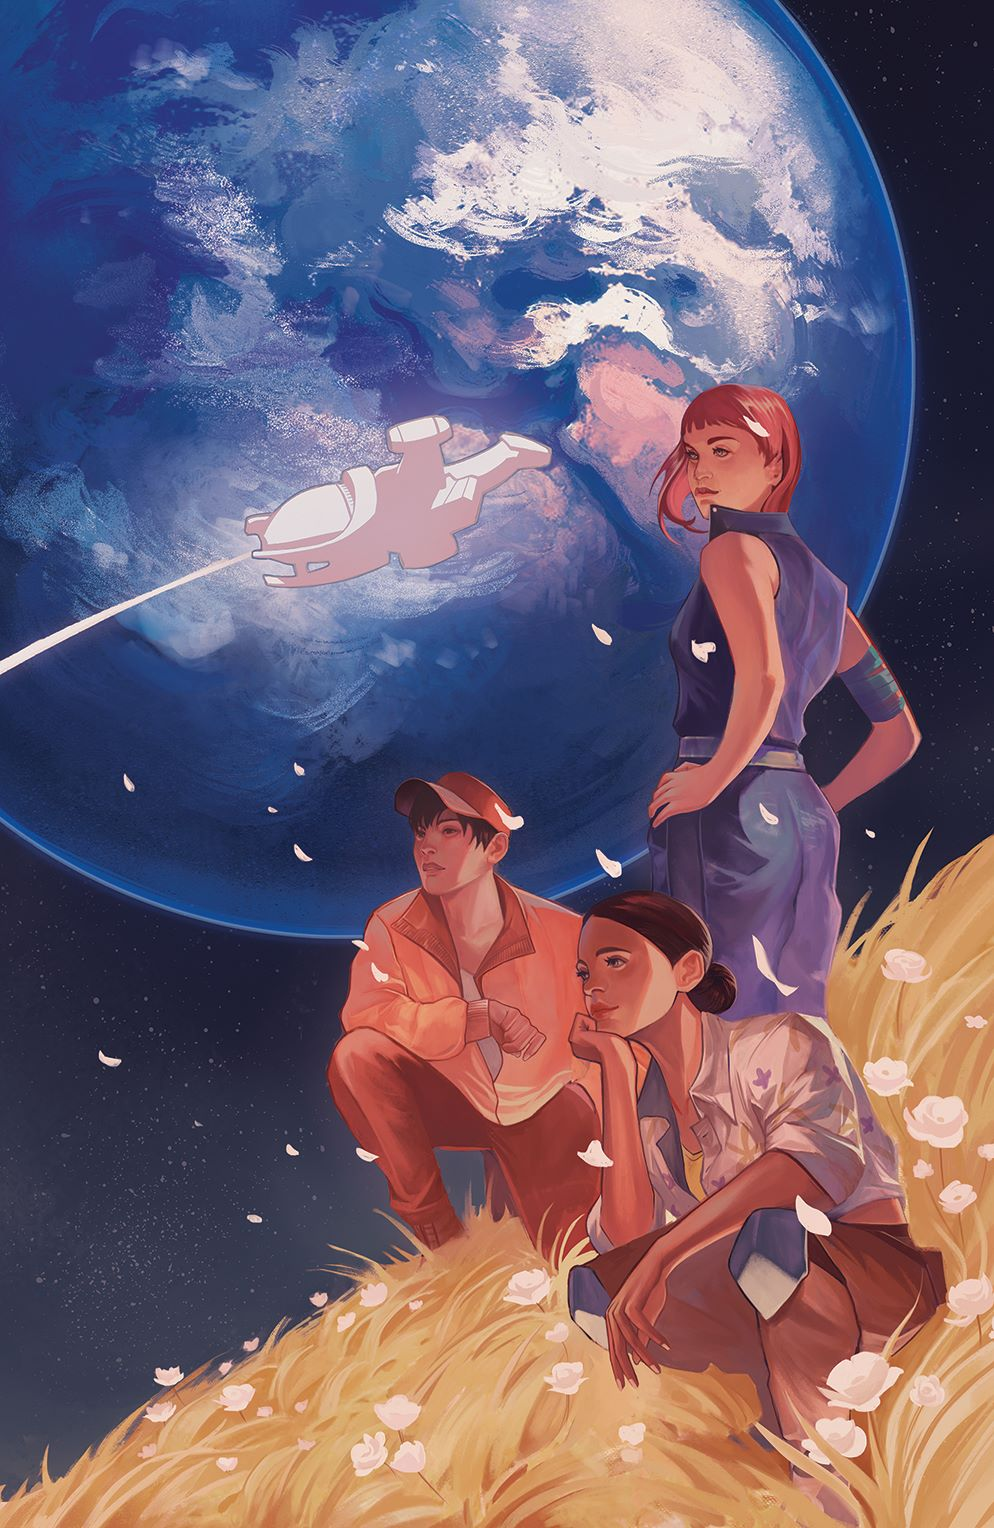 Firefly_BrandNewVerse_003_Cover_E_Unlockable ComicList Previews: FIREFLY A BRAND NEW 'VERSE #3 (OF 6)